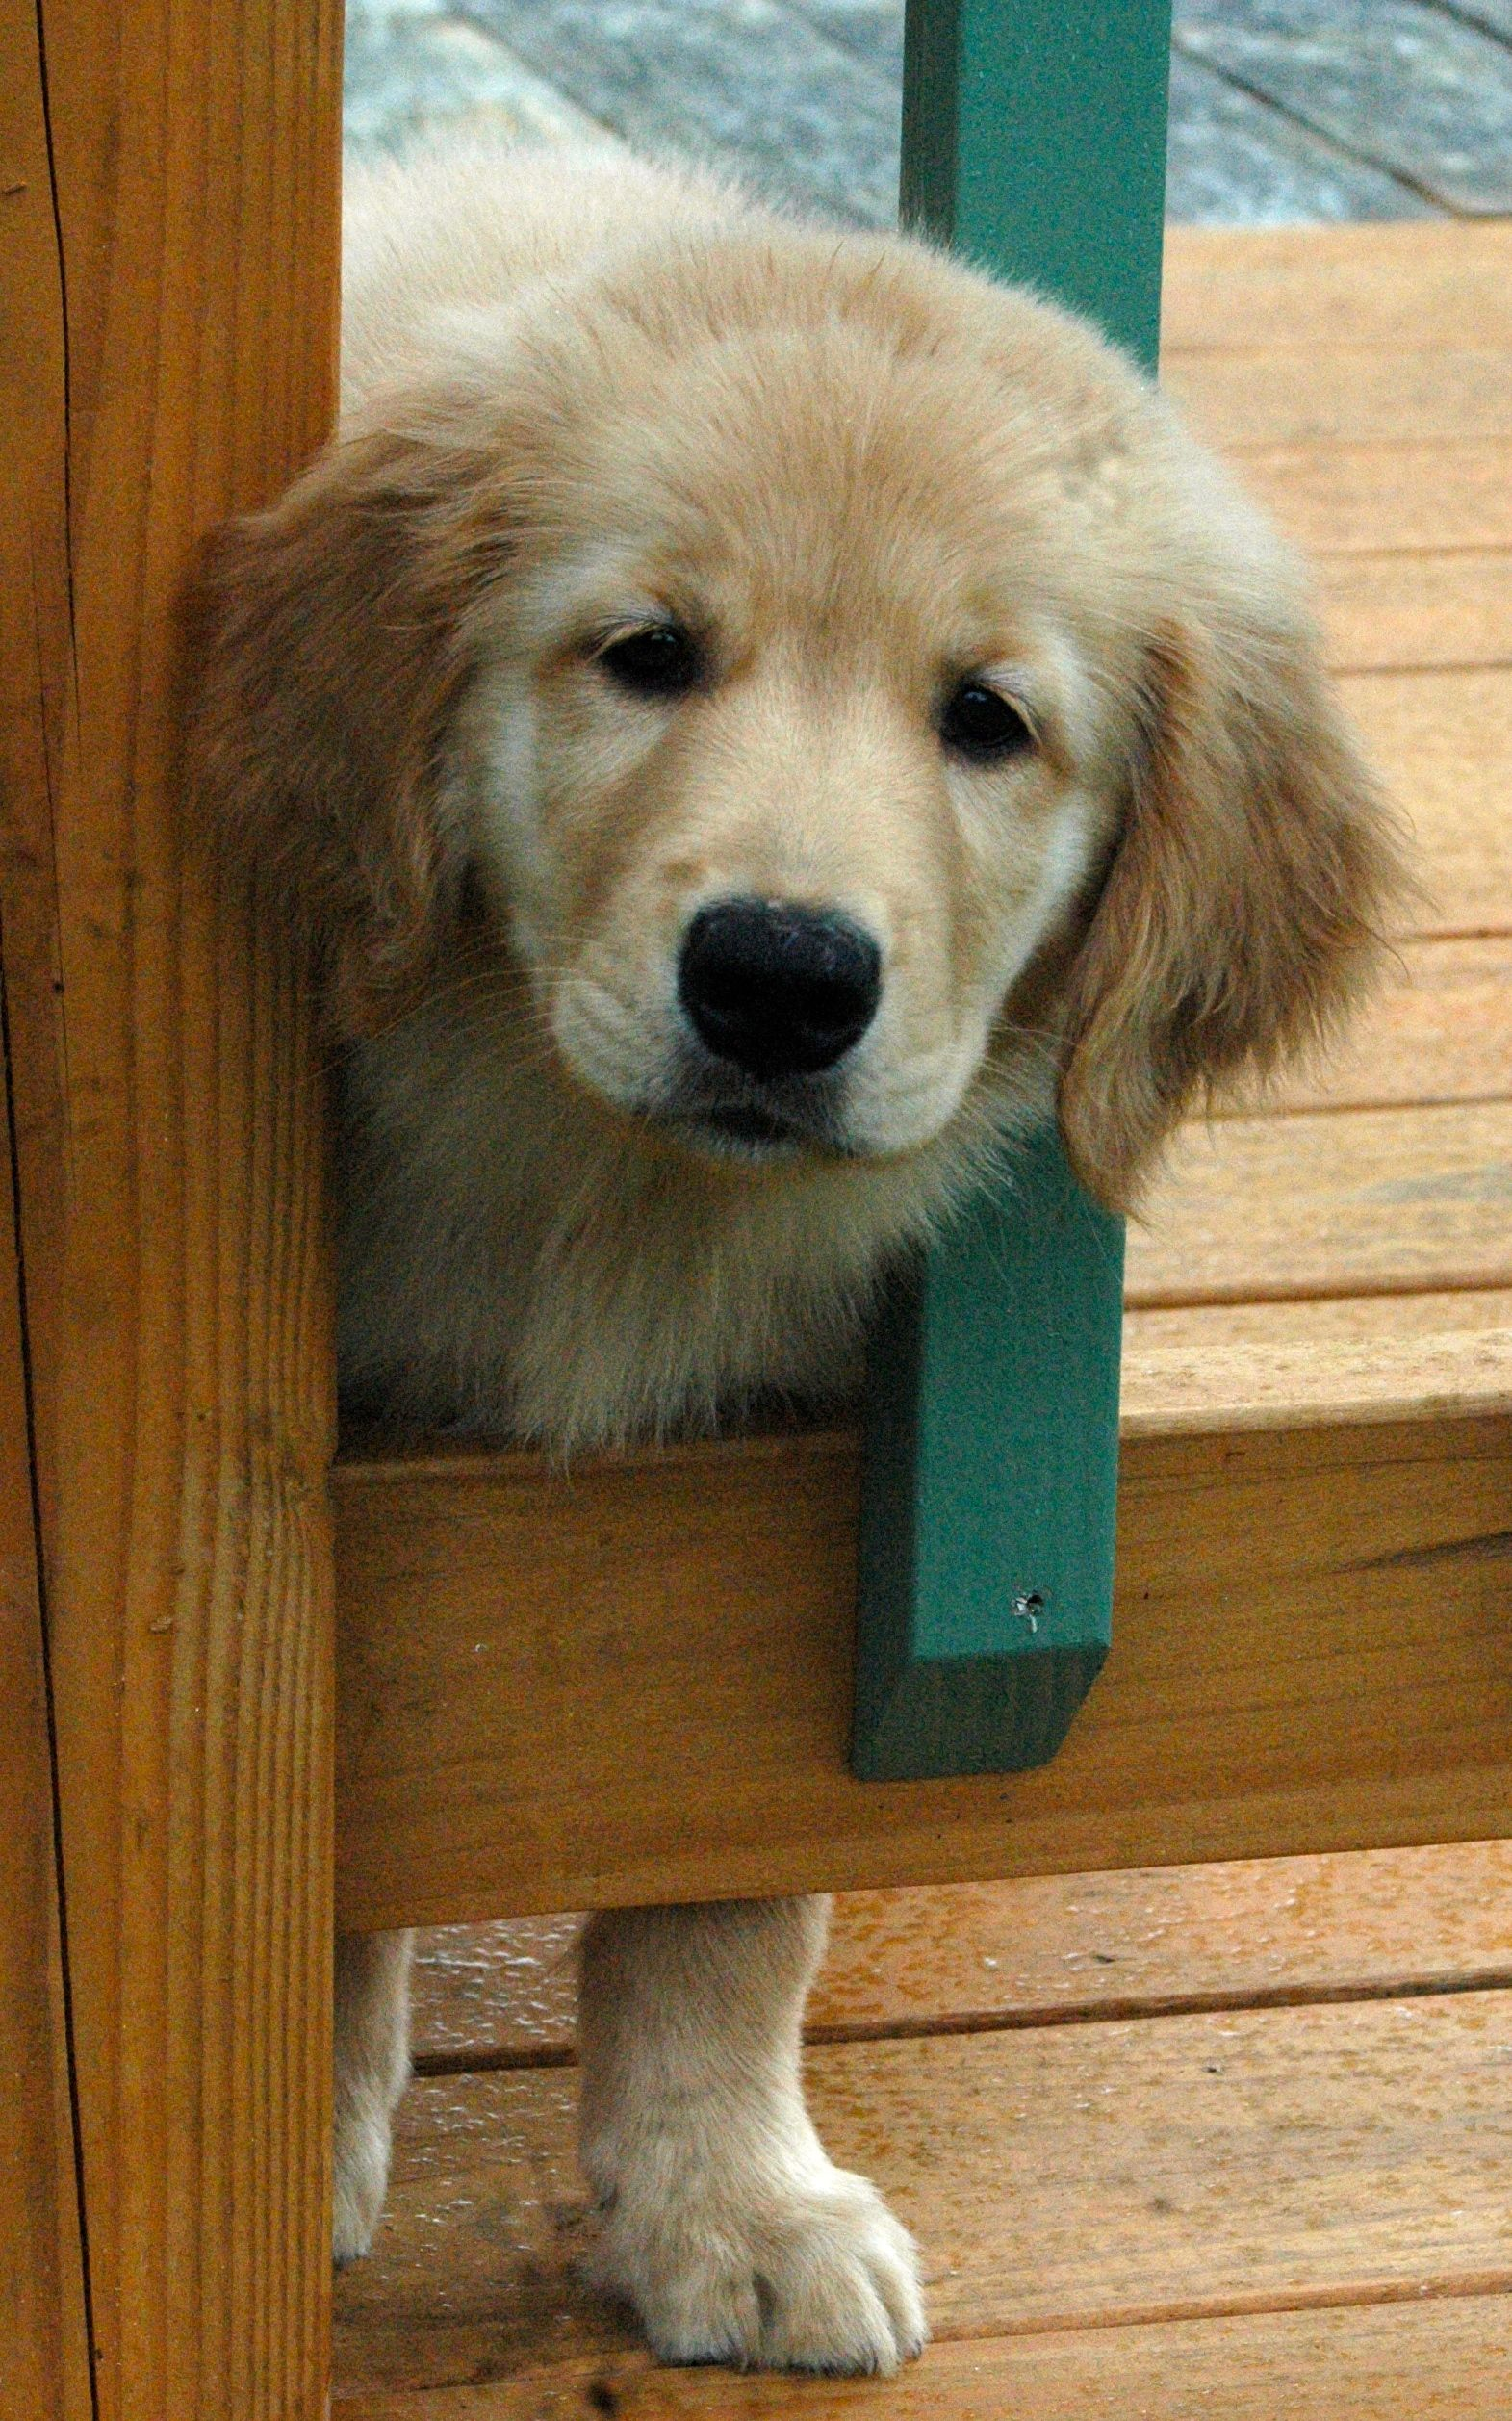 Pin By Lesley Turrell On Cute Animals With Images Cute Animals Golden Retriever I Love Dogs